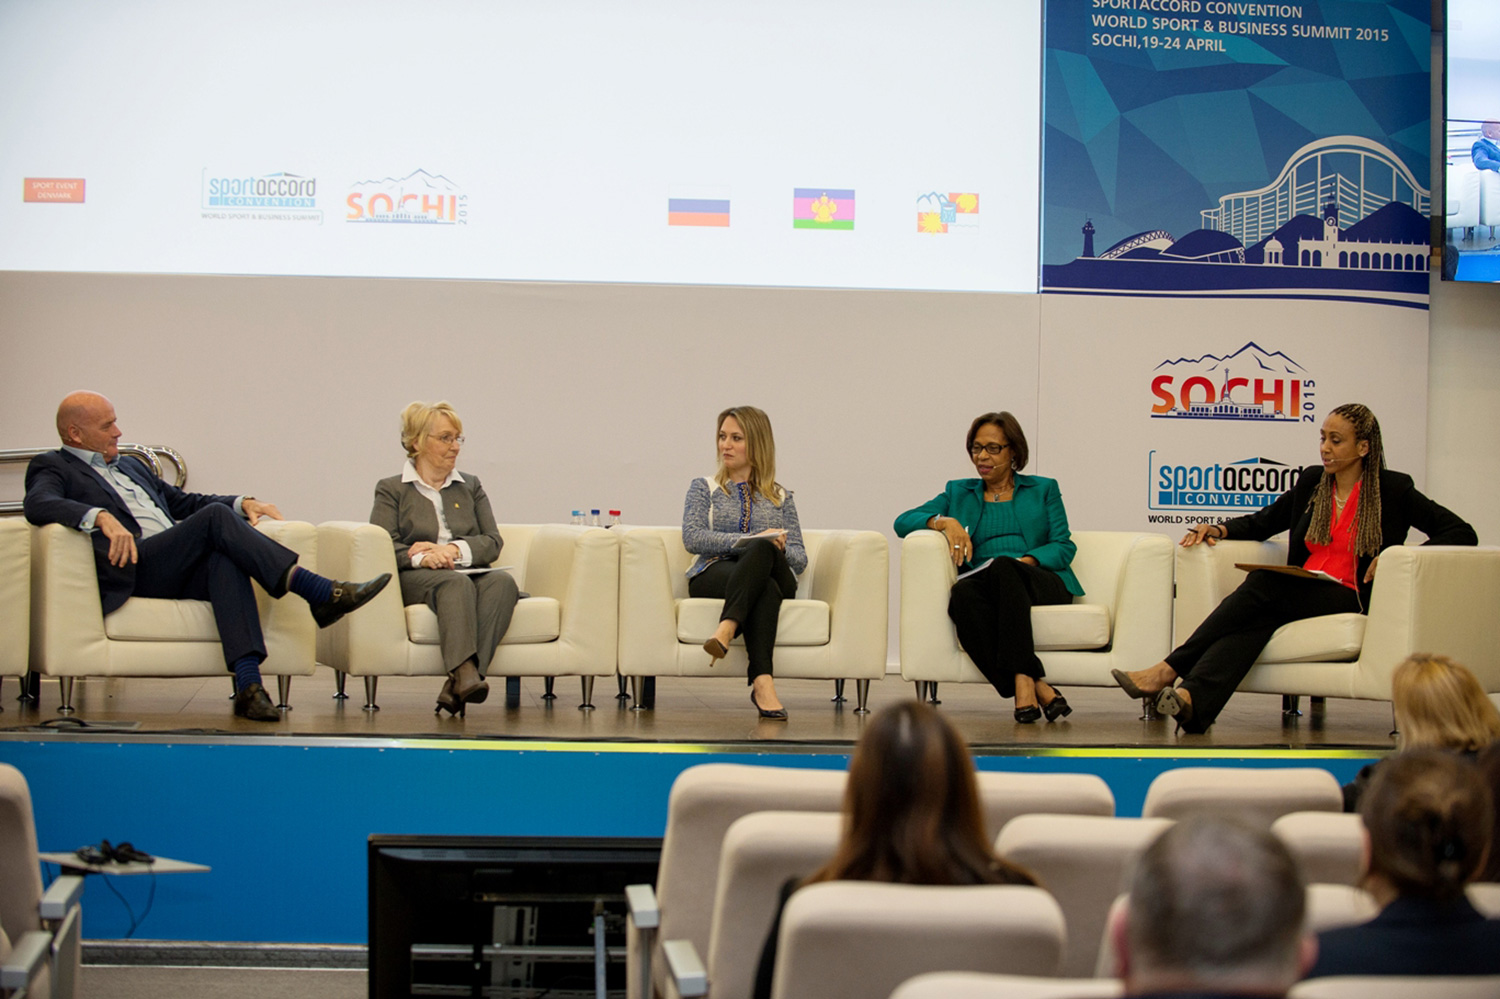 The SportAccord Convention women and sport discussion panel (l-r) Paul Smith, Kate Caithness, Sevi Hubert and Molly Rhone with moderator Charmaine Crooks  (SportAccord Convention)